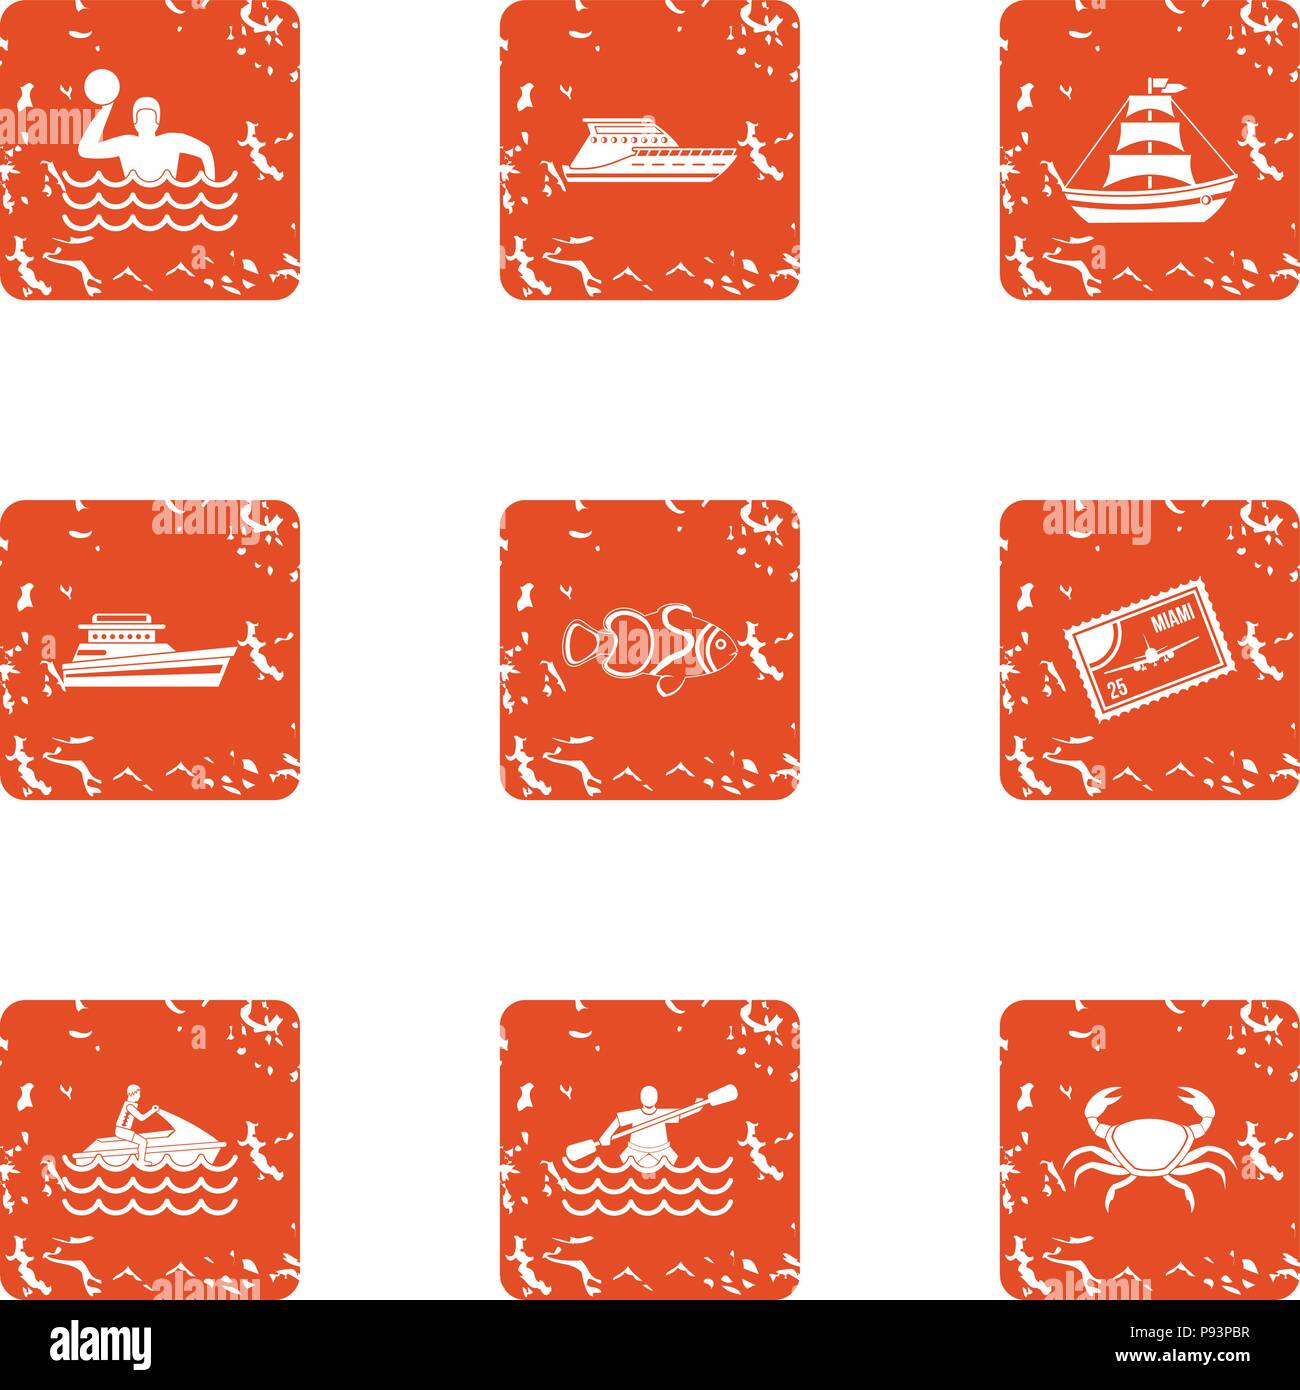 Water spectacle icons set, grunge style - Stock Vector